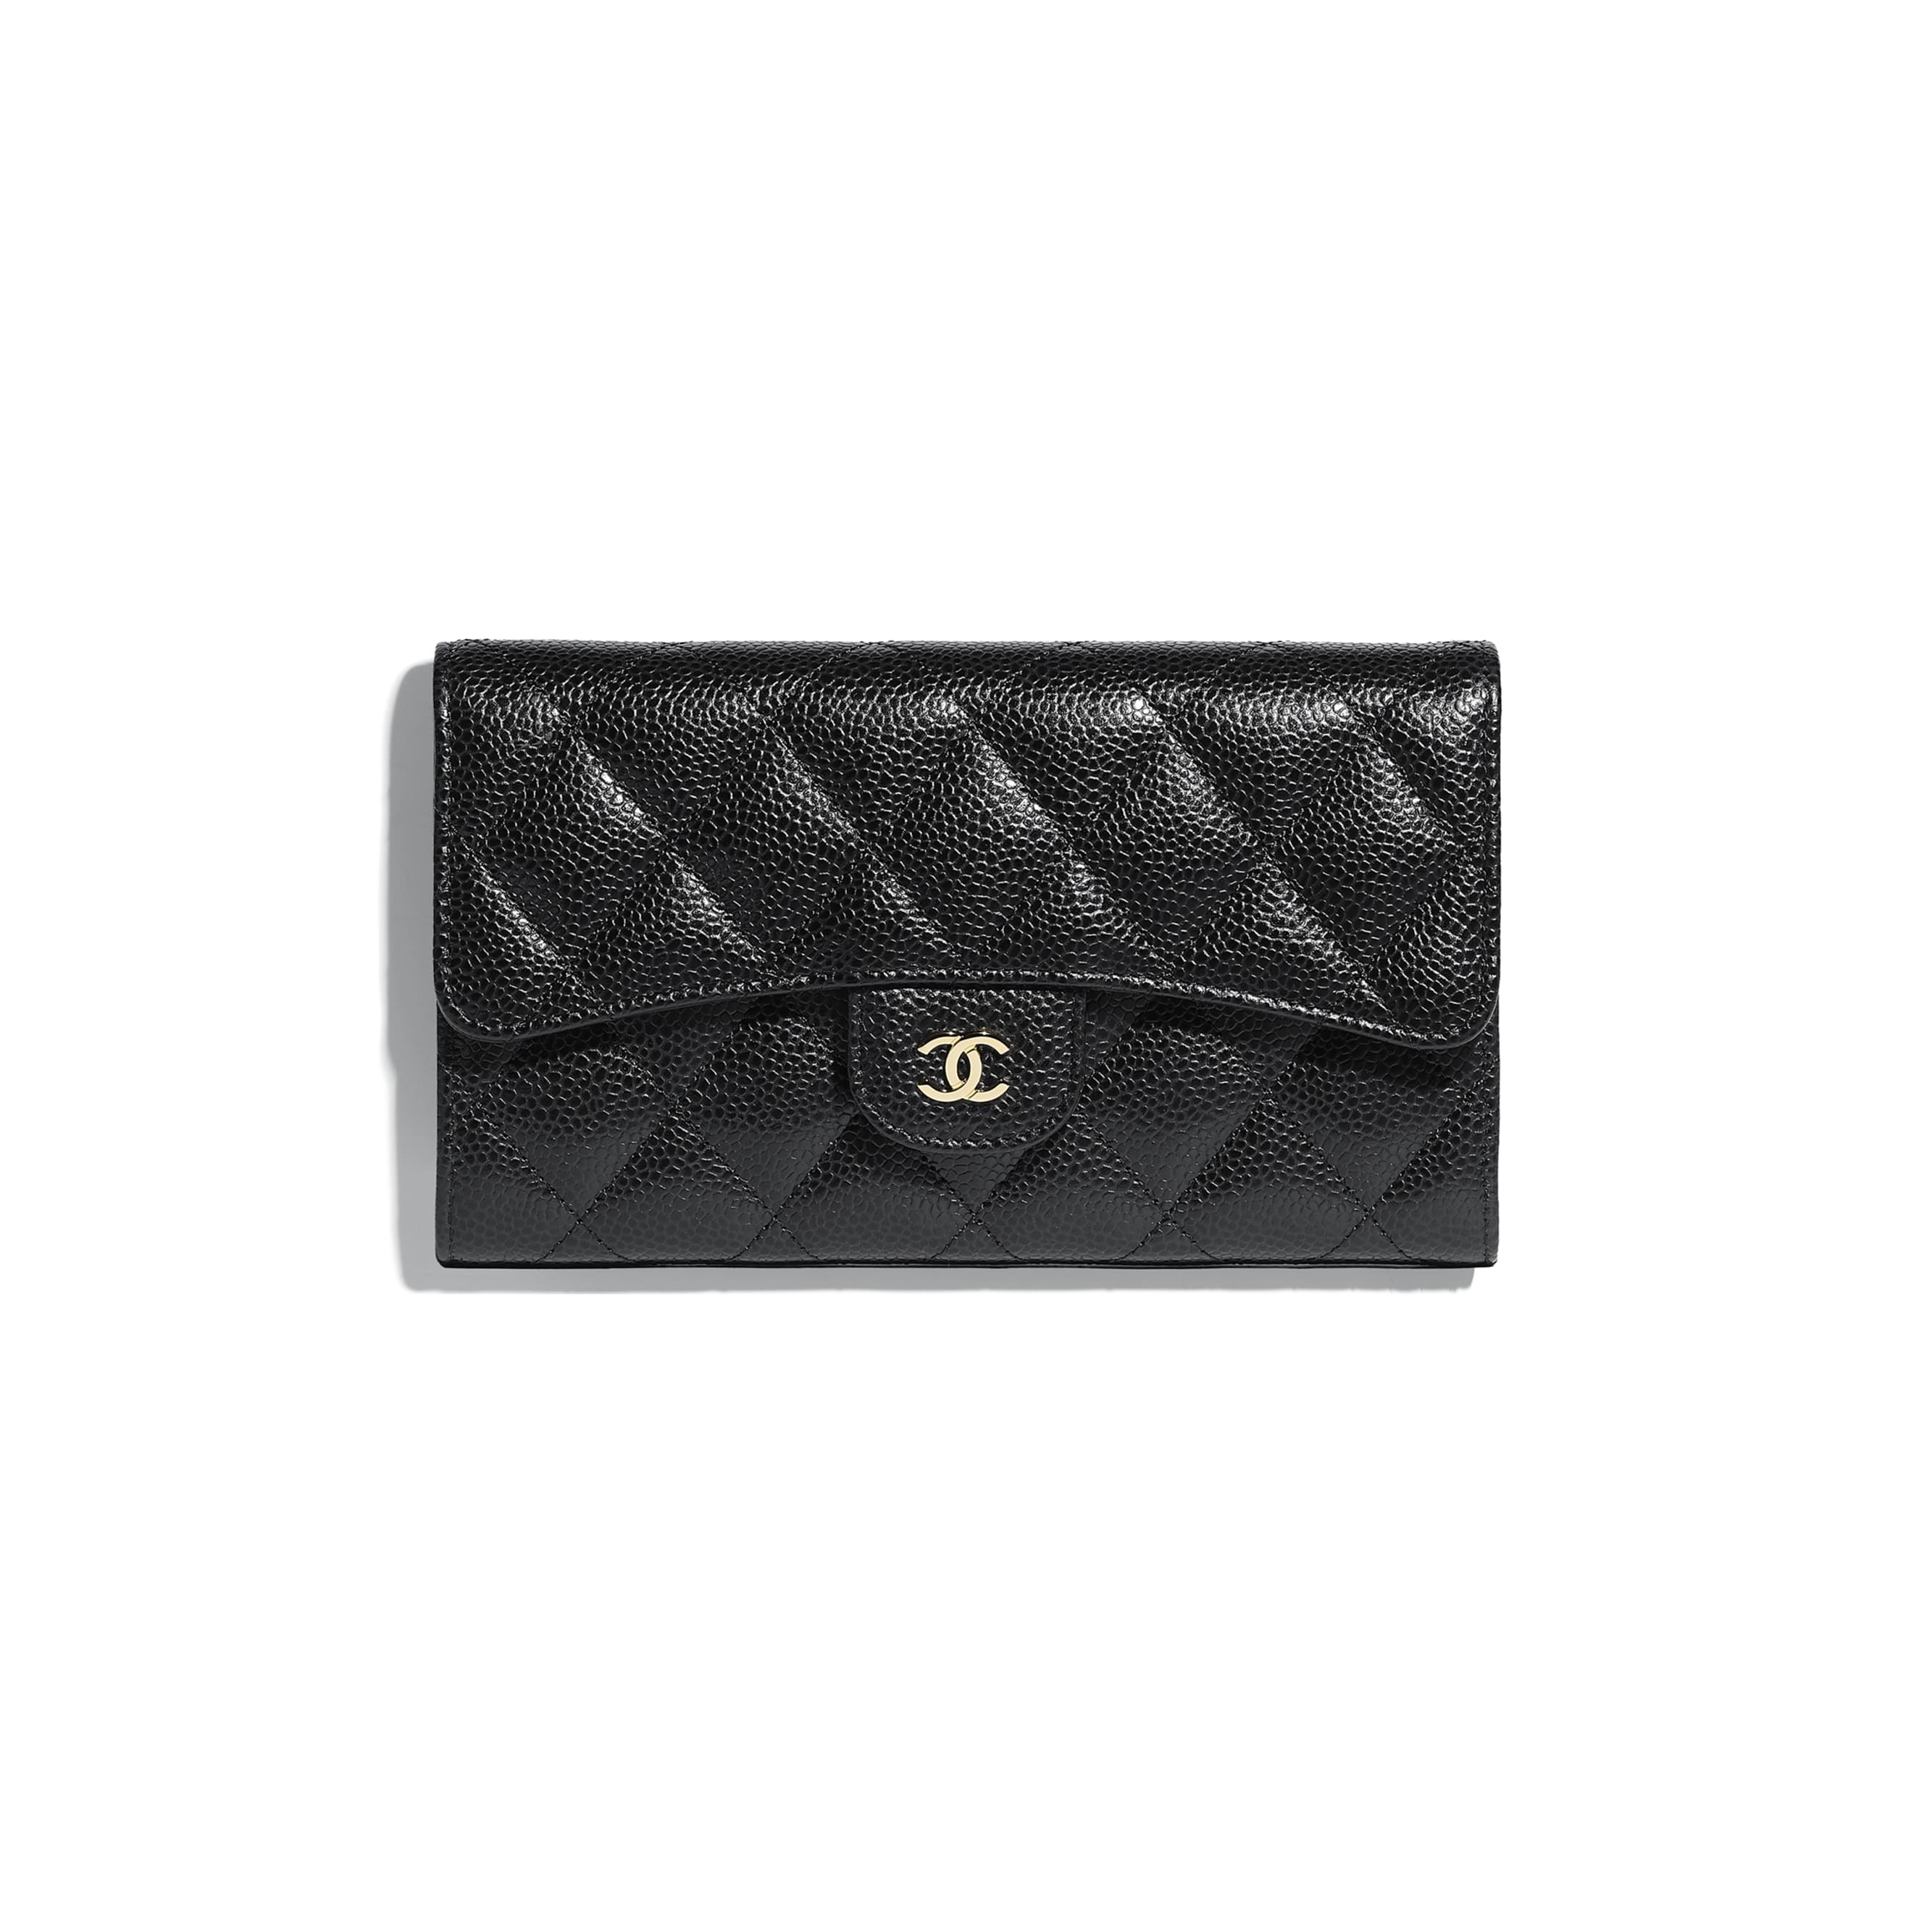 Classic Flap Wallet - Black - Grained Calfskin & Gold-Tone Metal - CHANEL - Default view - see standard sized version